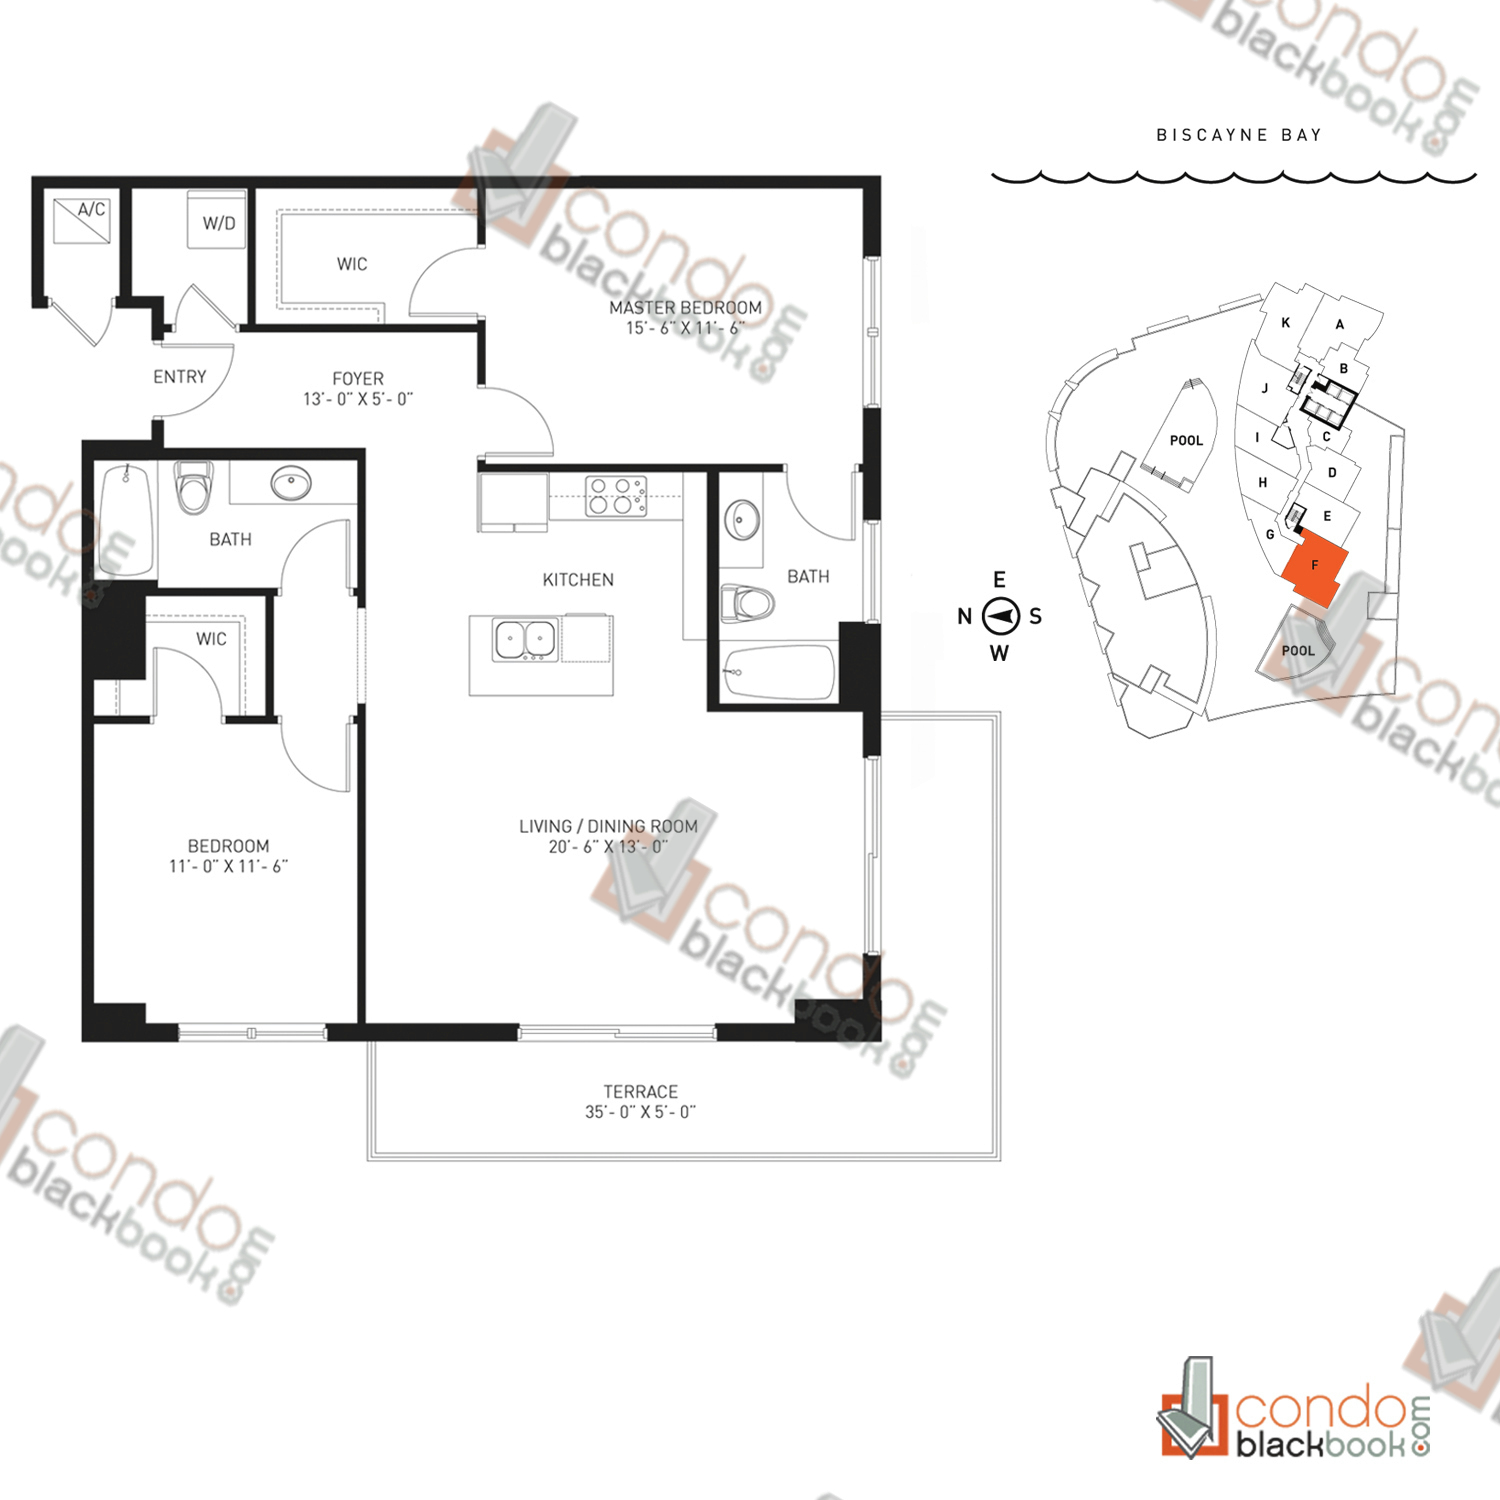 Floor plan for Quantum on the Bay Edgewater Miami, model Residence_F, line South Tower - 11, 2/2 bedrooms, 1,180 sq ft